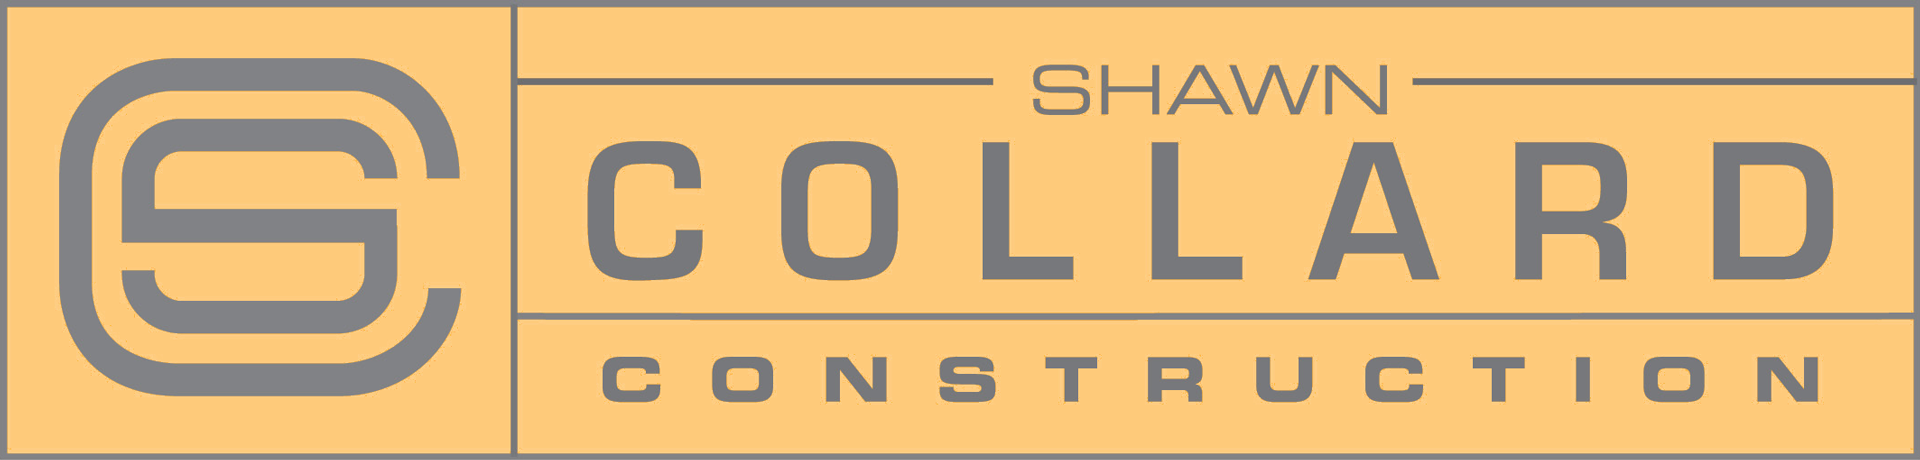 Shawn Collard Construction Logo